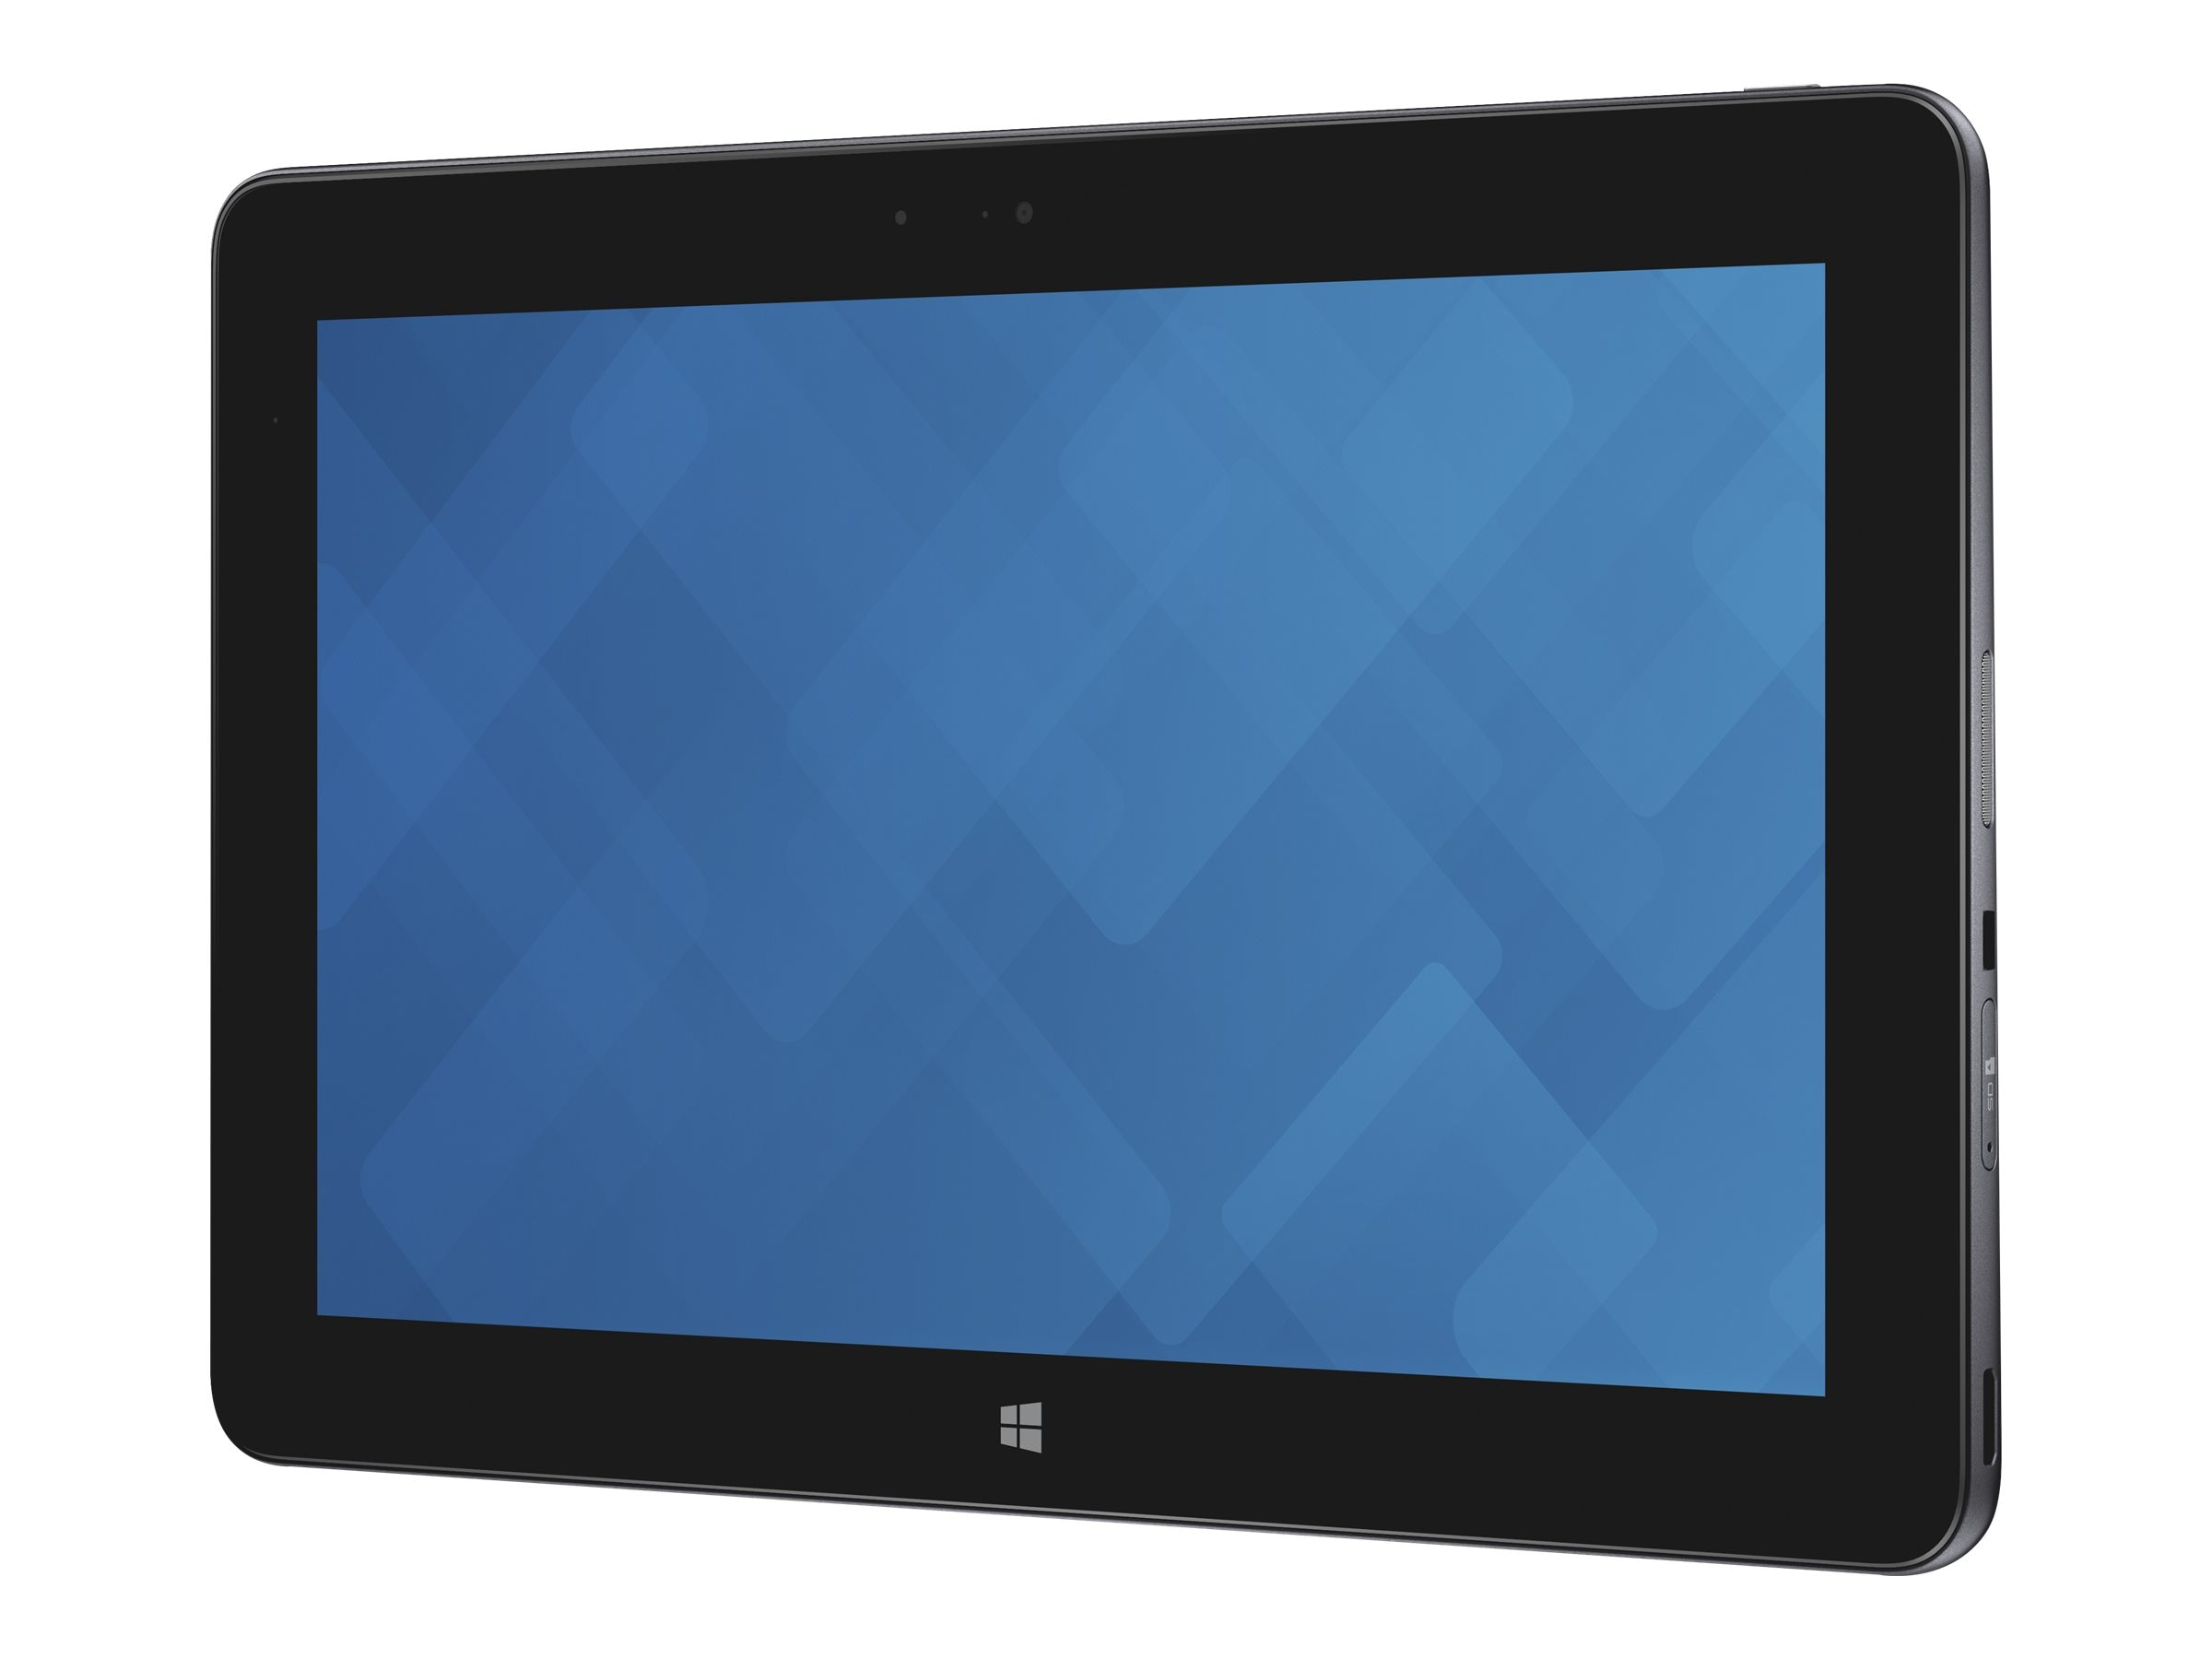 Dell Venue 11 Pro Atom Z3770 1.46GHz 2GB 64GB SSD 802.11n BT NFC 2xWC 10.8 FHD MT W8.1, 462-3339, 16496901, Tablets